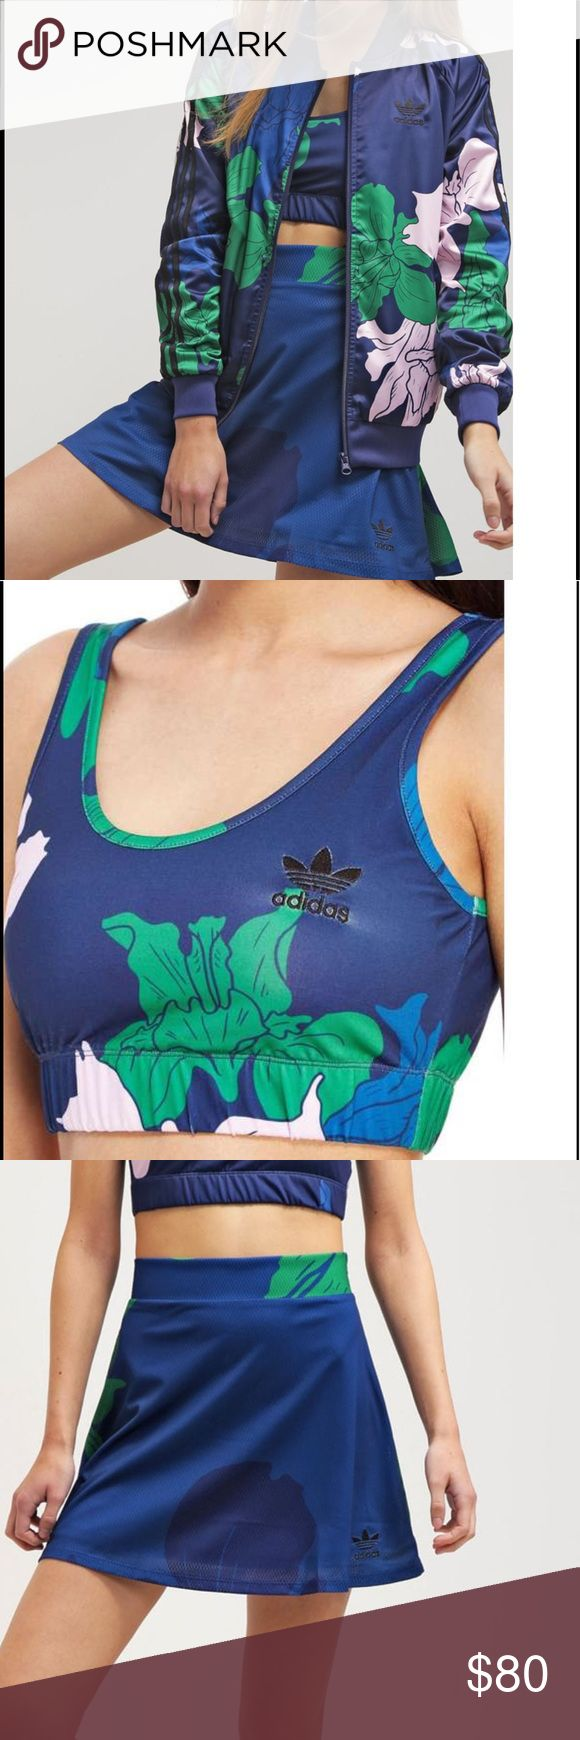 Adidas Originals floral engraving set NWT set. Skirt is a small and sports bra is a large. I am a 36B and fit this with my padded bra under for a fuller look! I was going to wear in a photoshoot but changed outfits! adidas originals Other